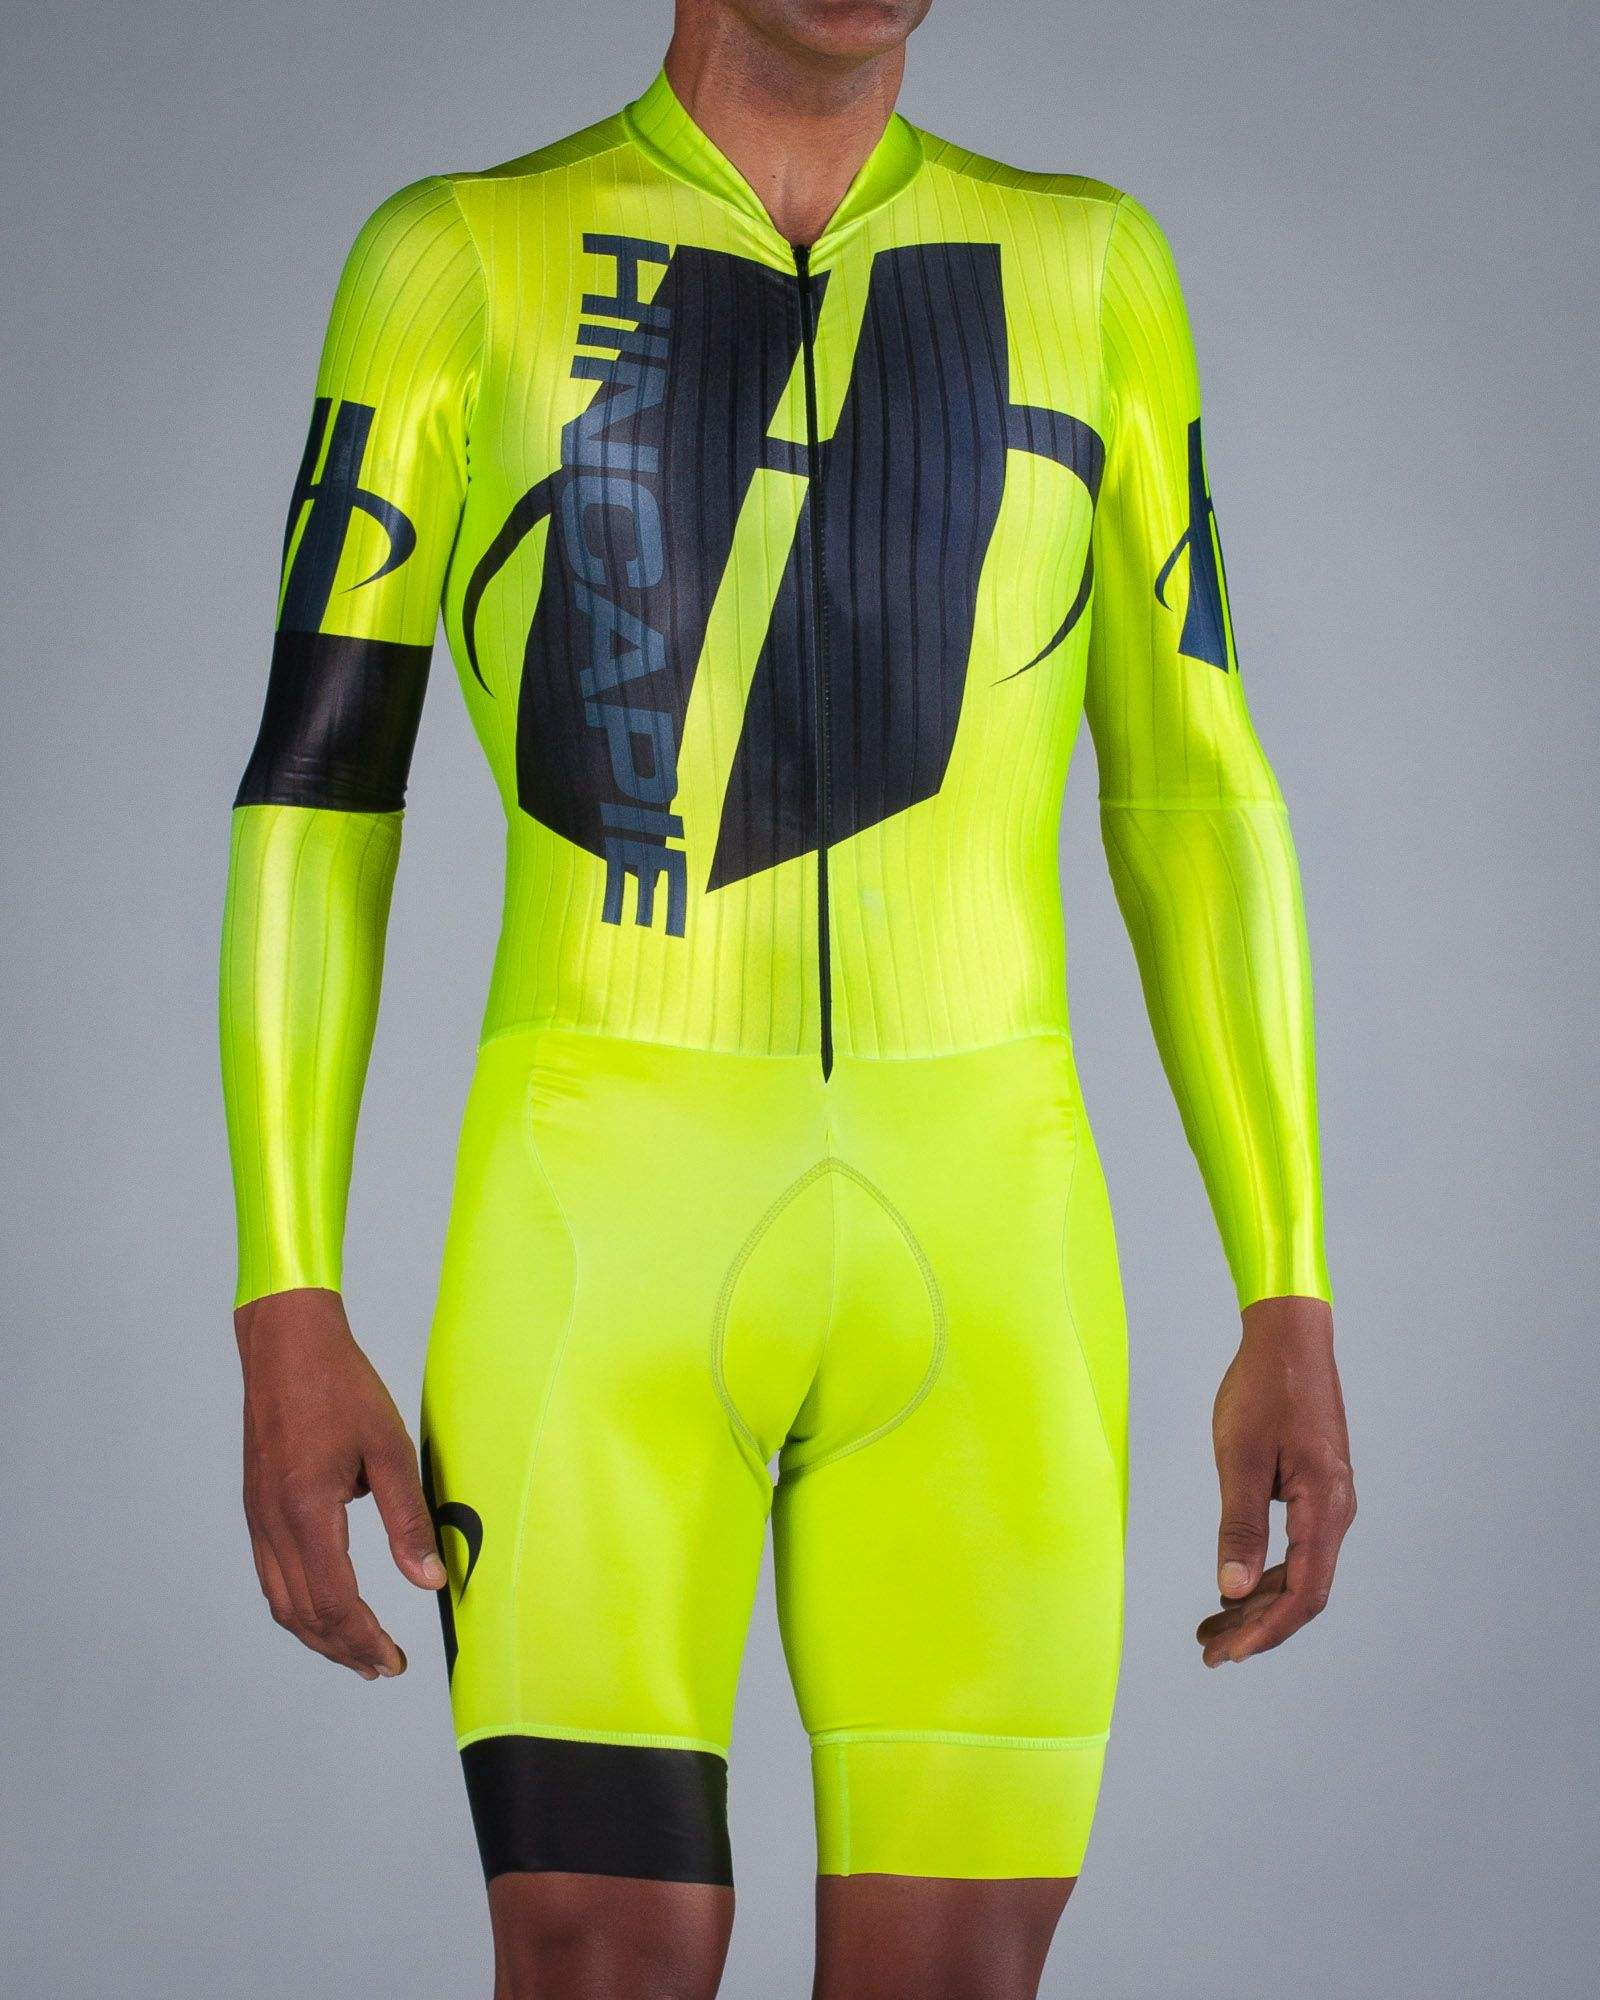 Cheap sublimation triathlon Suit Breathable Premium Quality Sublimated CustomTriathlon Man Suit Customized cycling wear